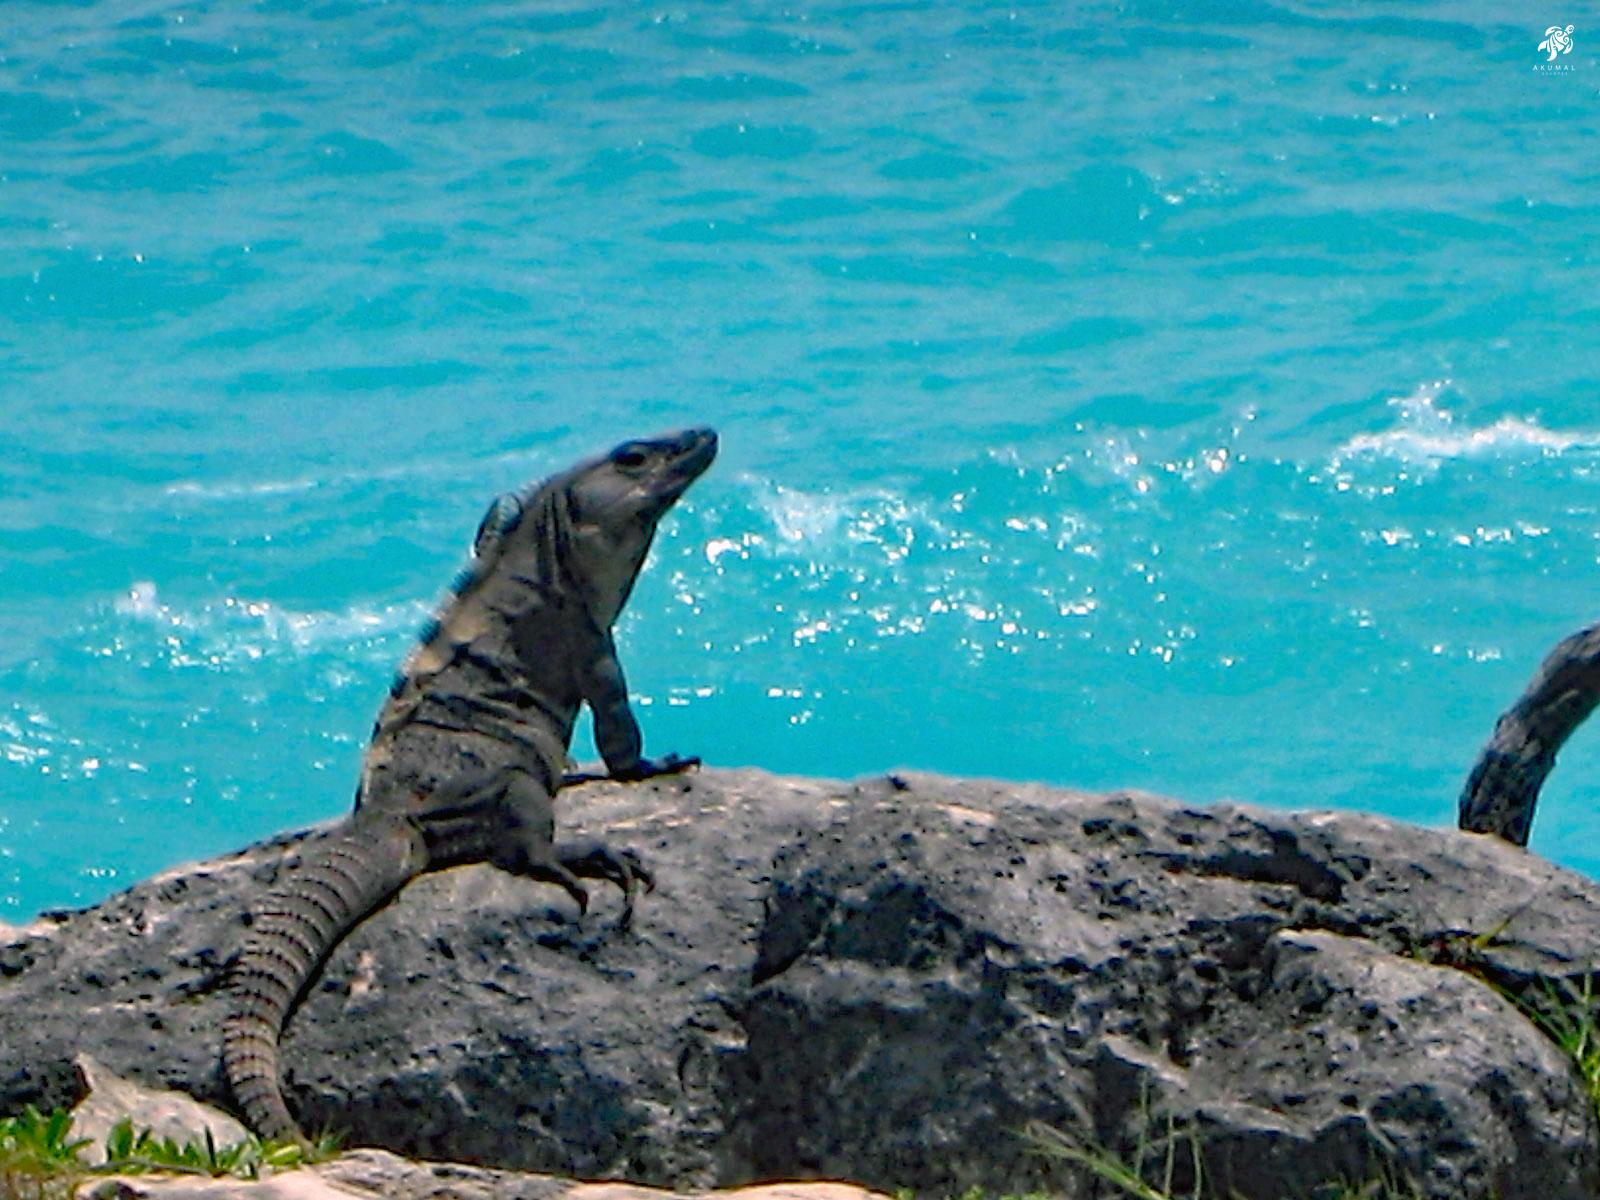 One of our local Residents: A Caribbean Iquana sunning himself